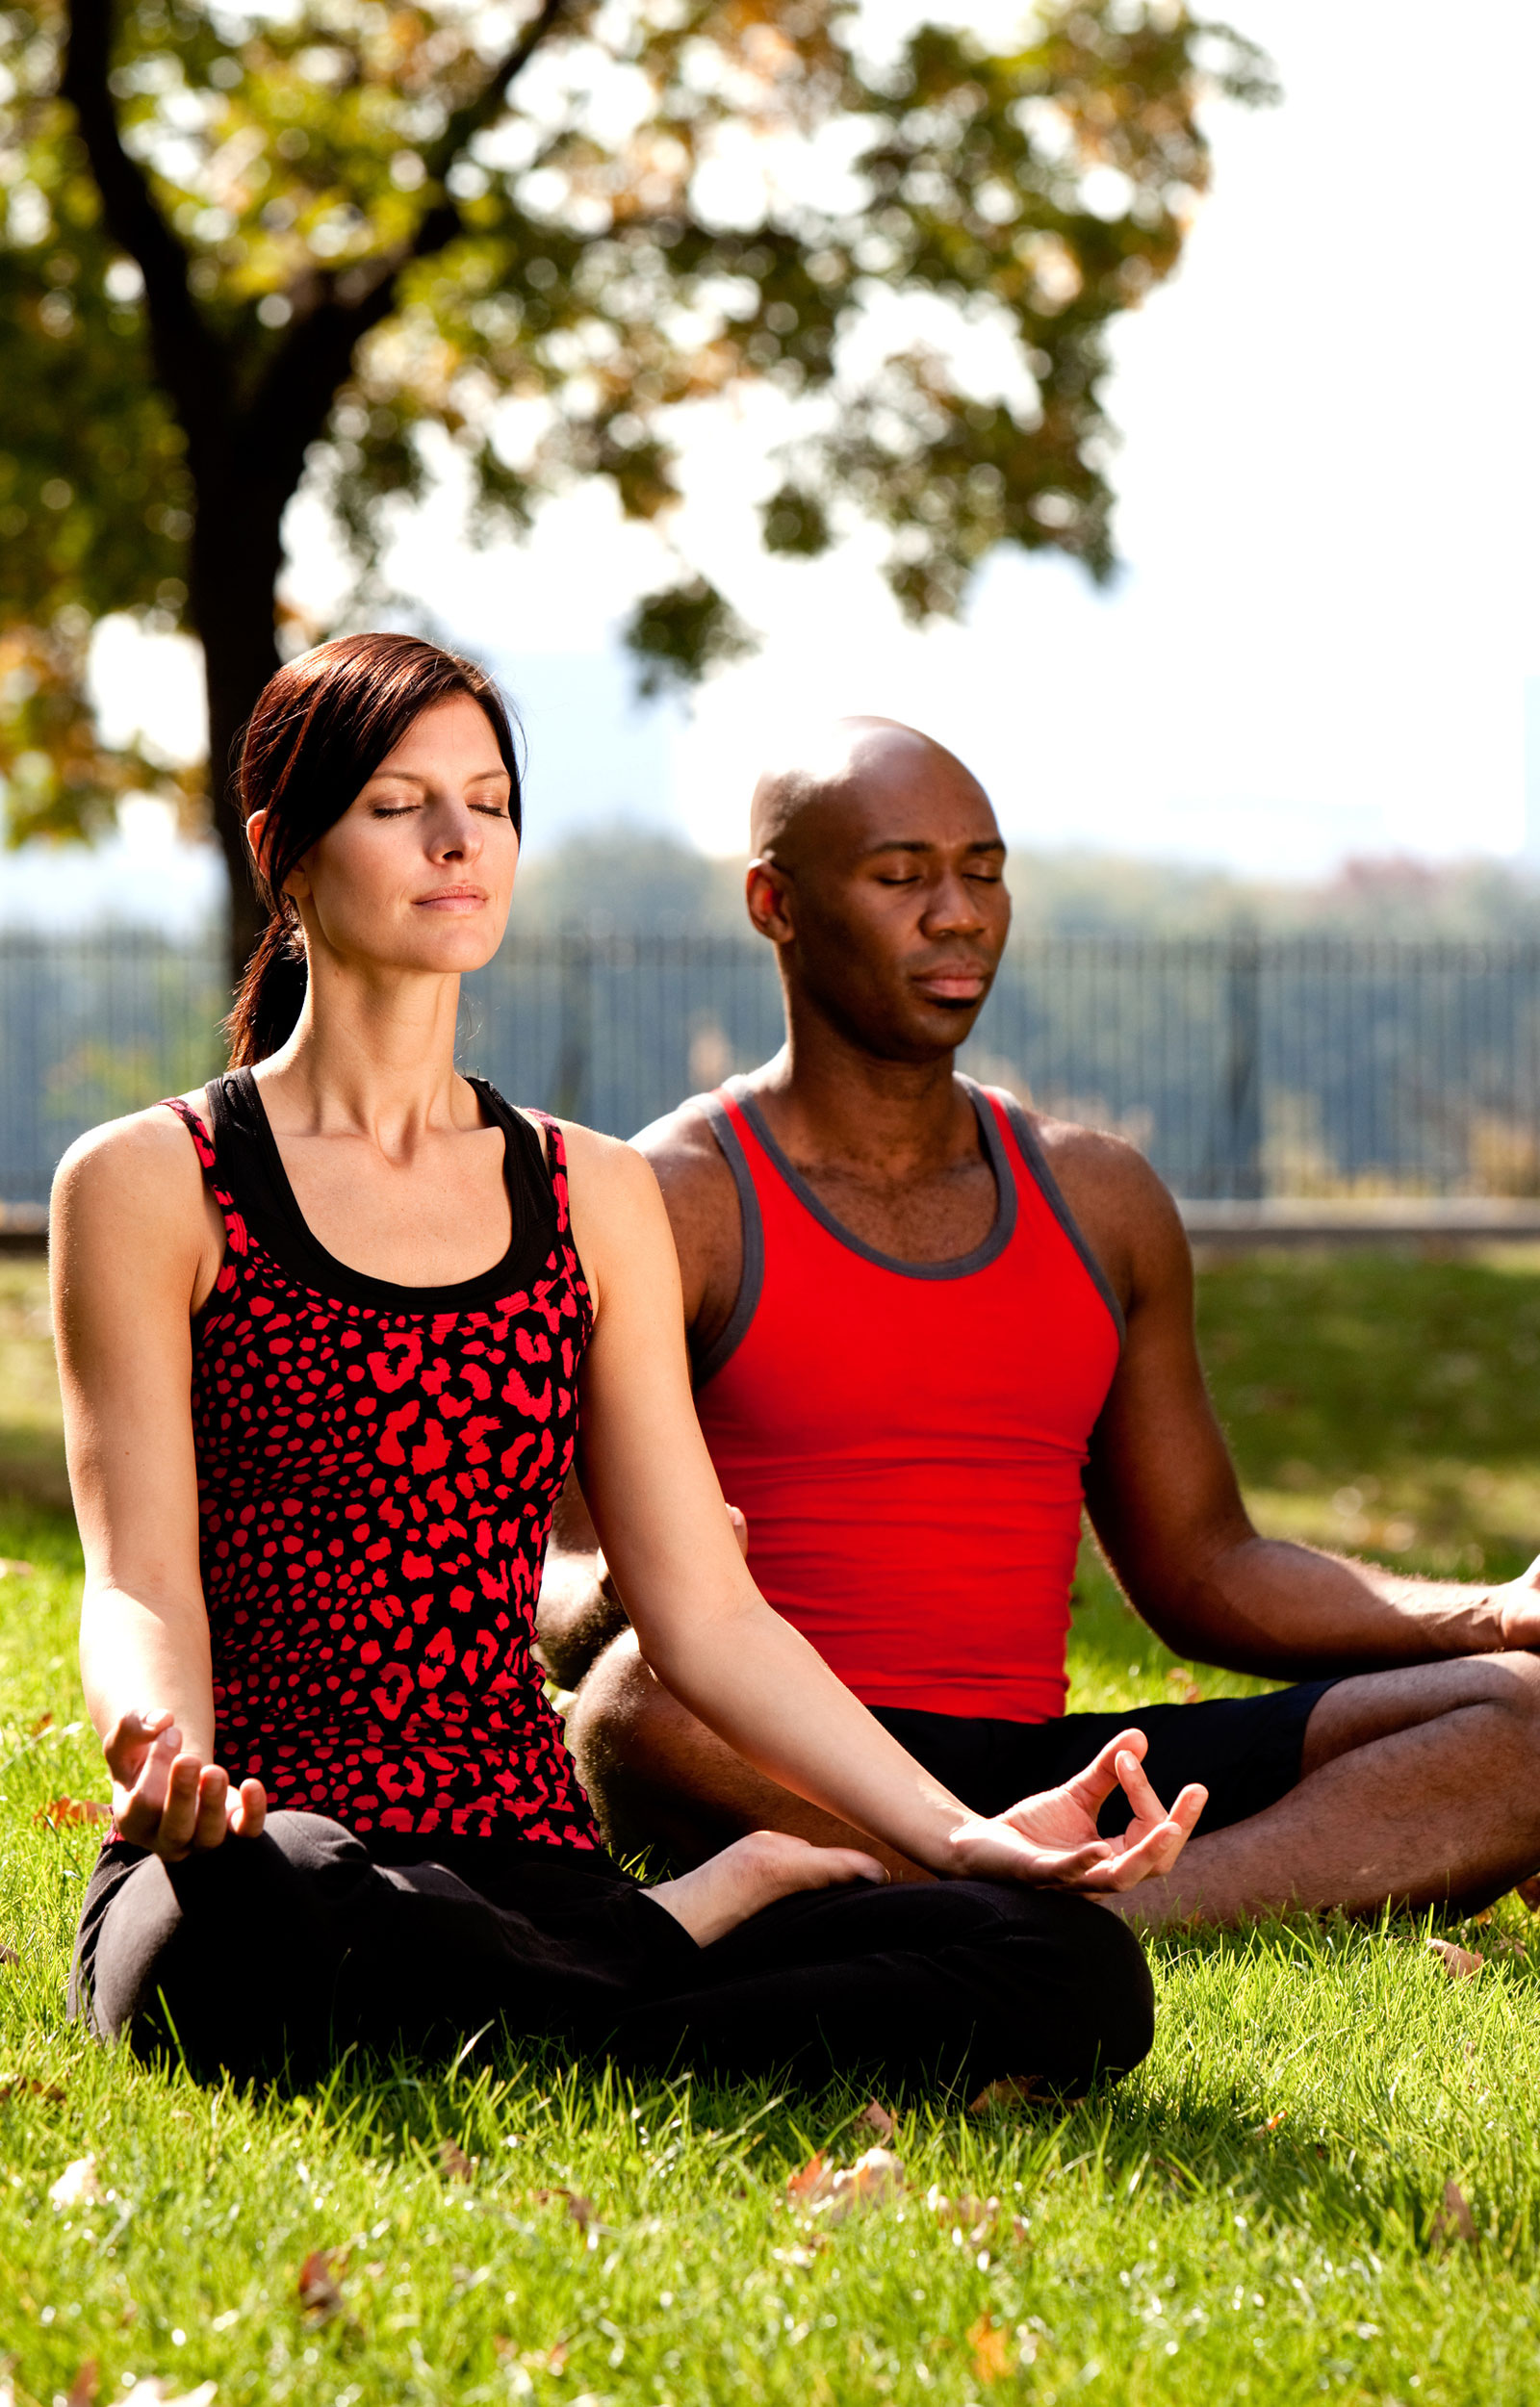 Partners Meditating | 60 Yoga Postures For Anyone From Beginners To Yogis